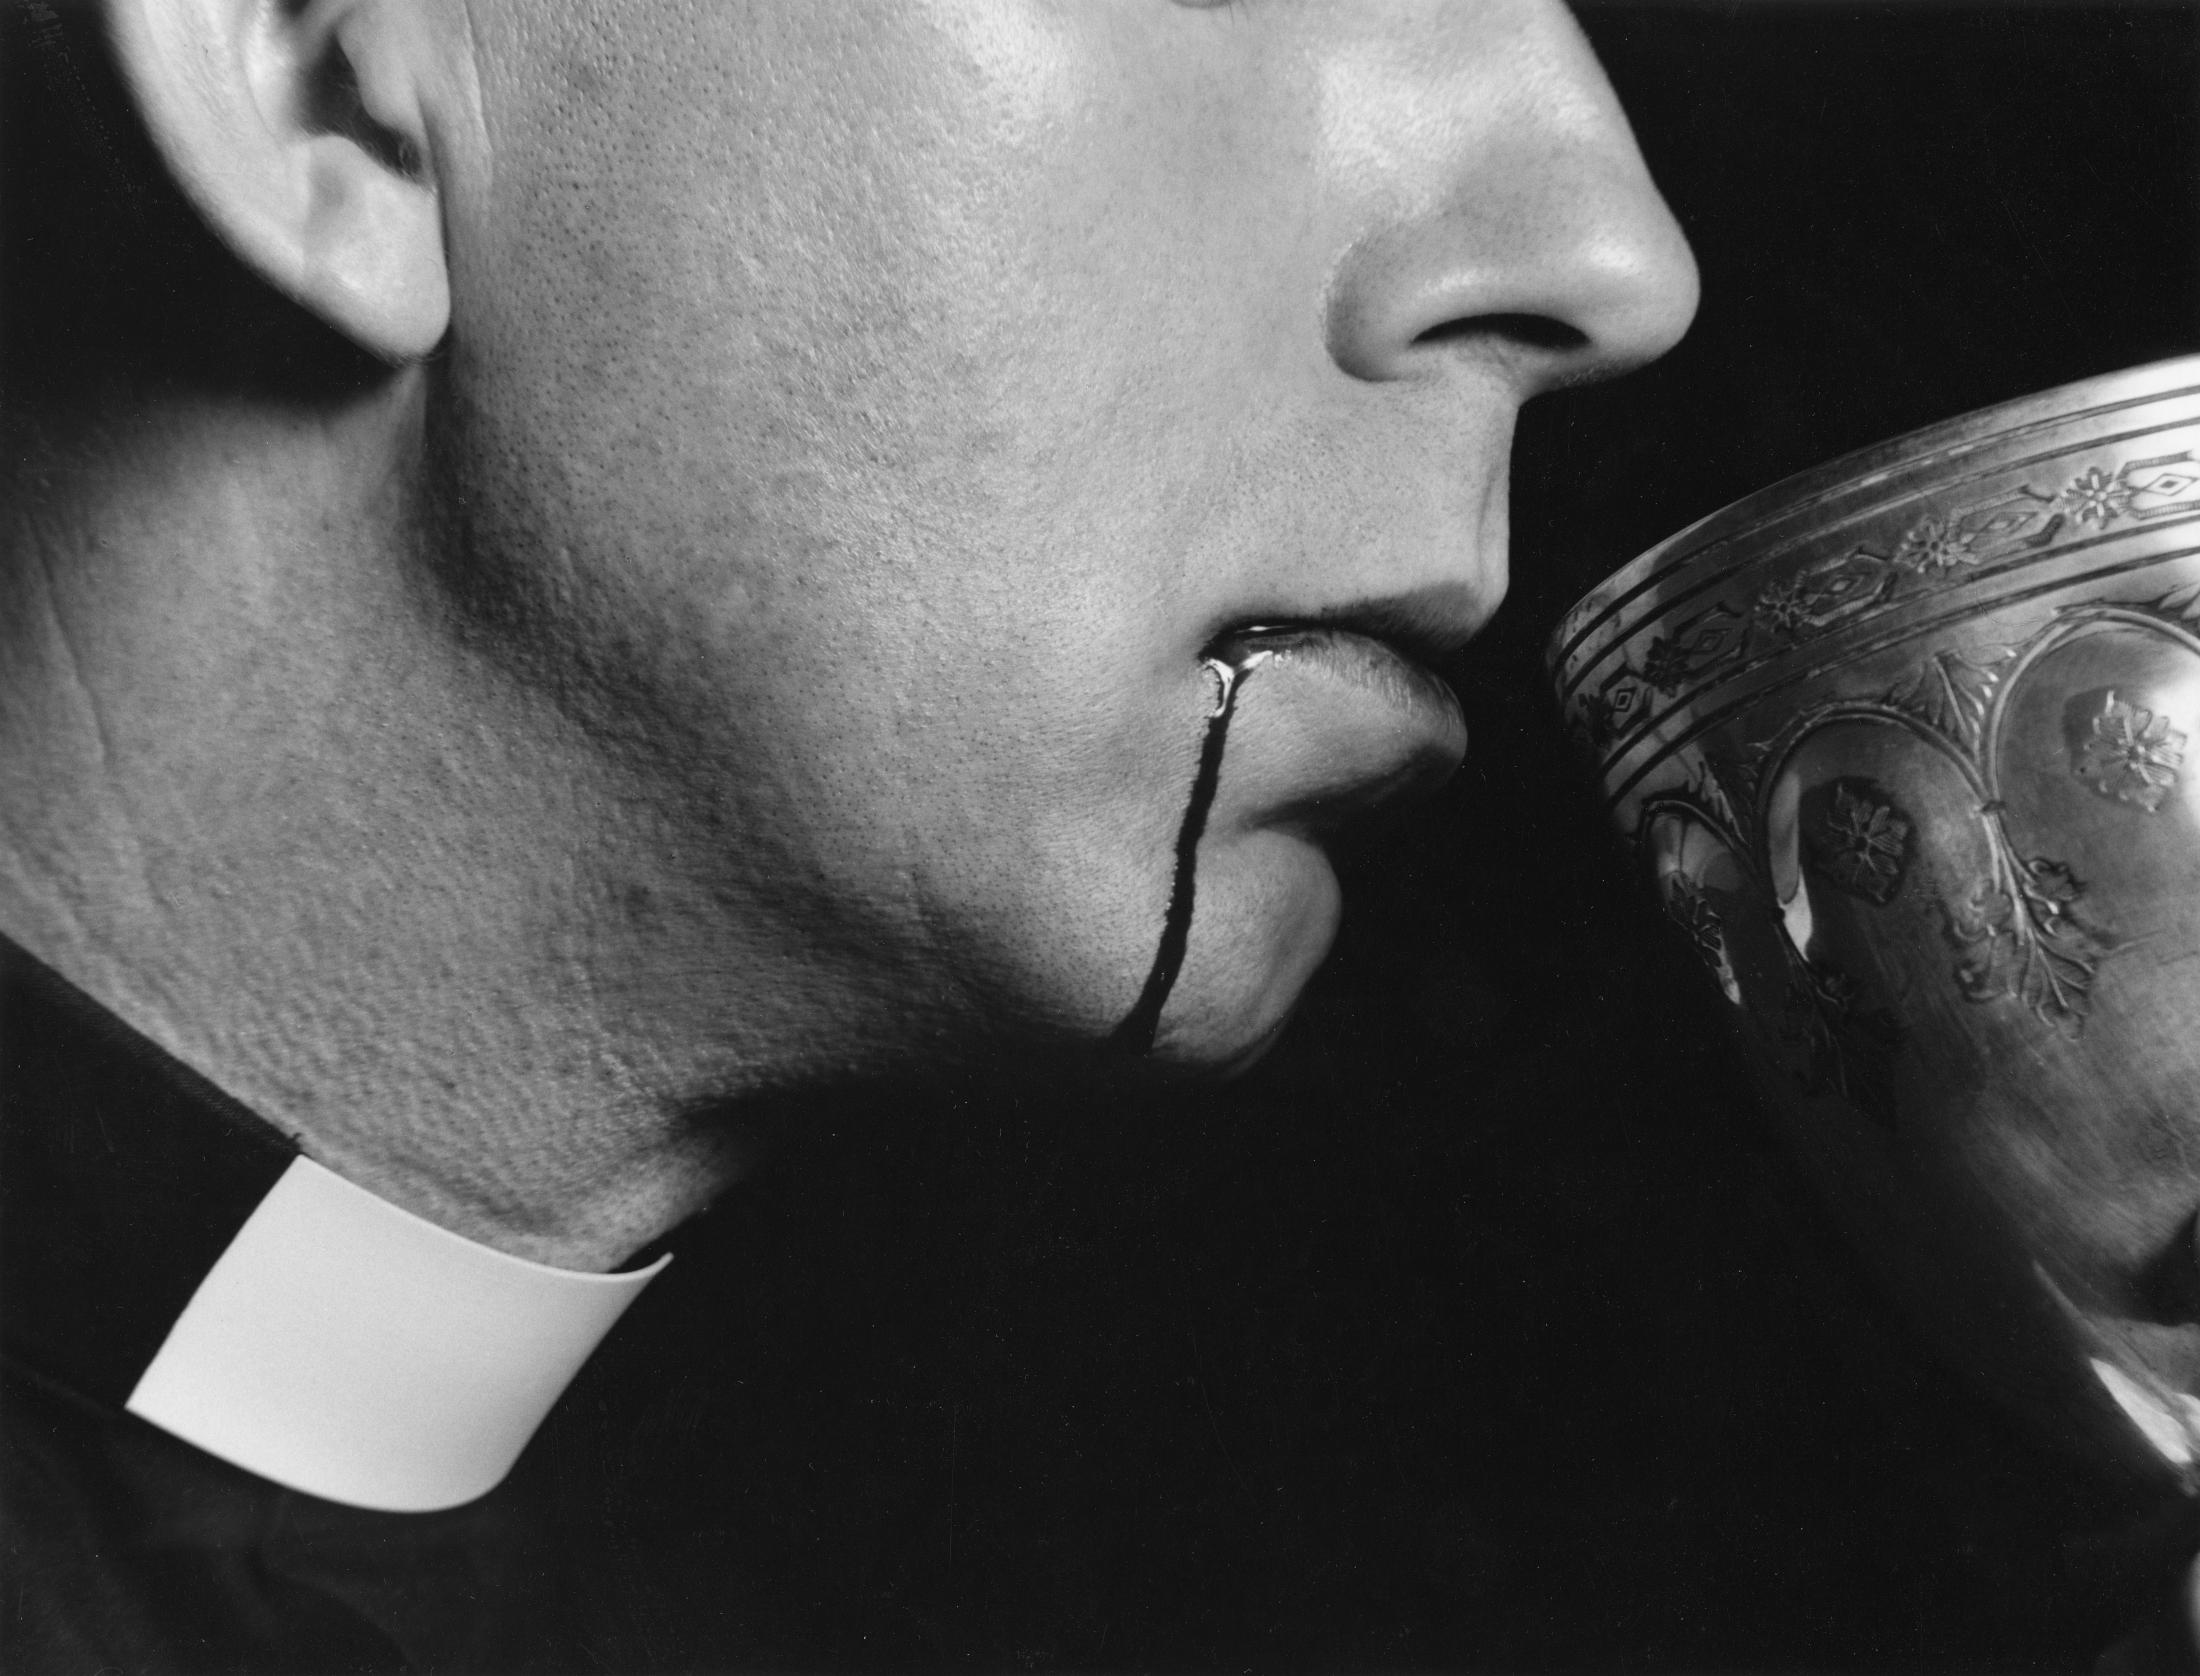 Art and Documentary Photography - Loading 10_Communion_cup____Mike_Goldwater.jpg